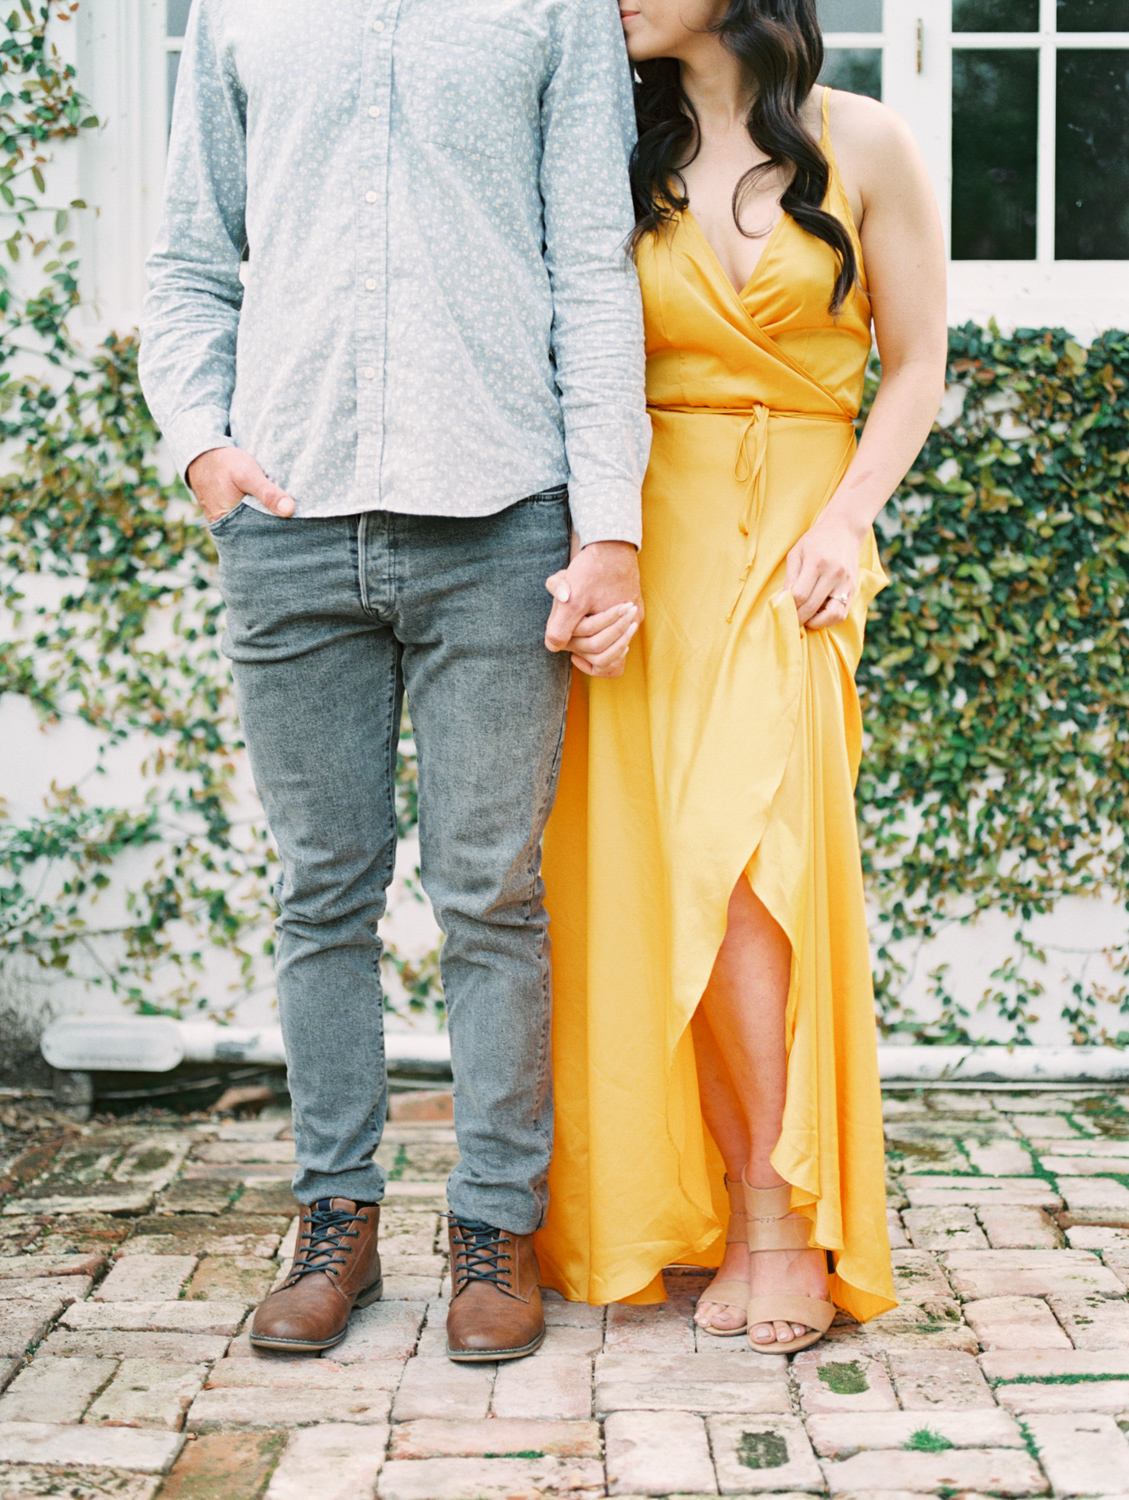 Idyllic Engagement Inspiration on Stunning California Estate With Modern Pops of Yellow